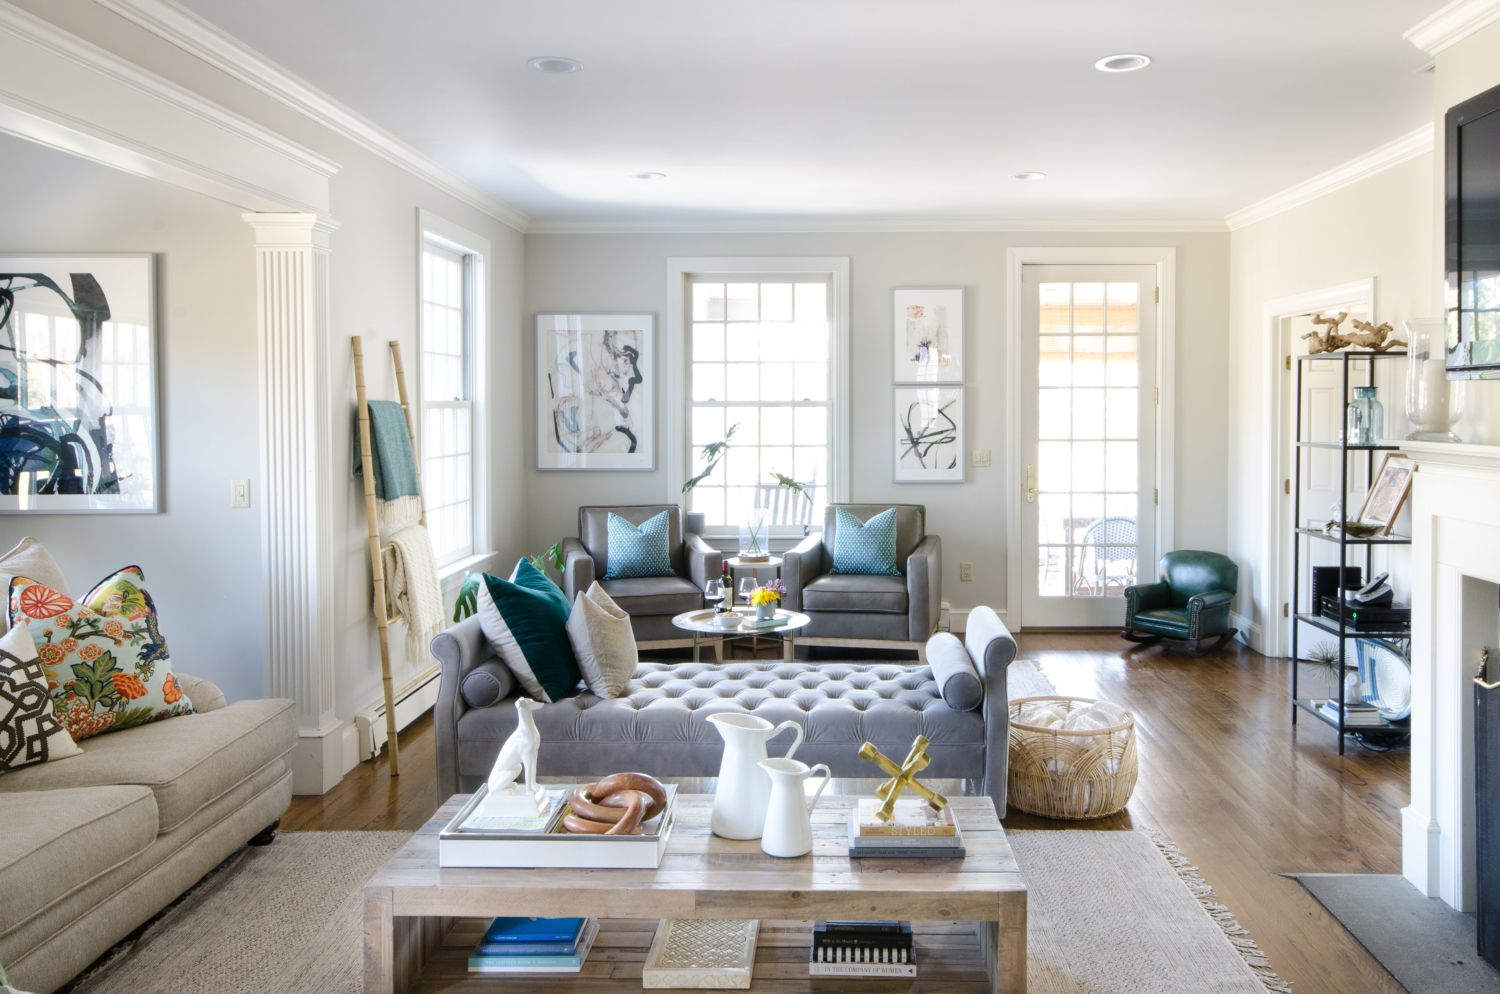 A Stylish Family Room That S Both Chic And Friendly Featuring Neutral Furniture Thoughtful Pops Of Color Features An Oversized English Roll Arm